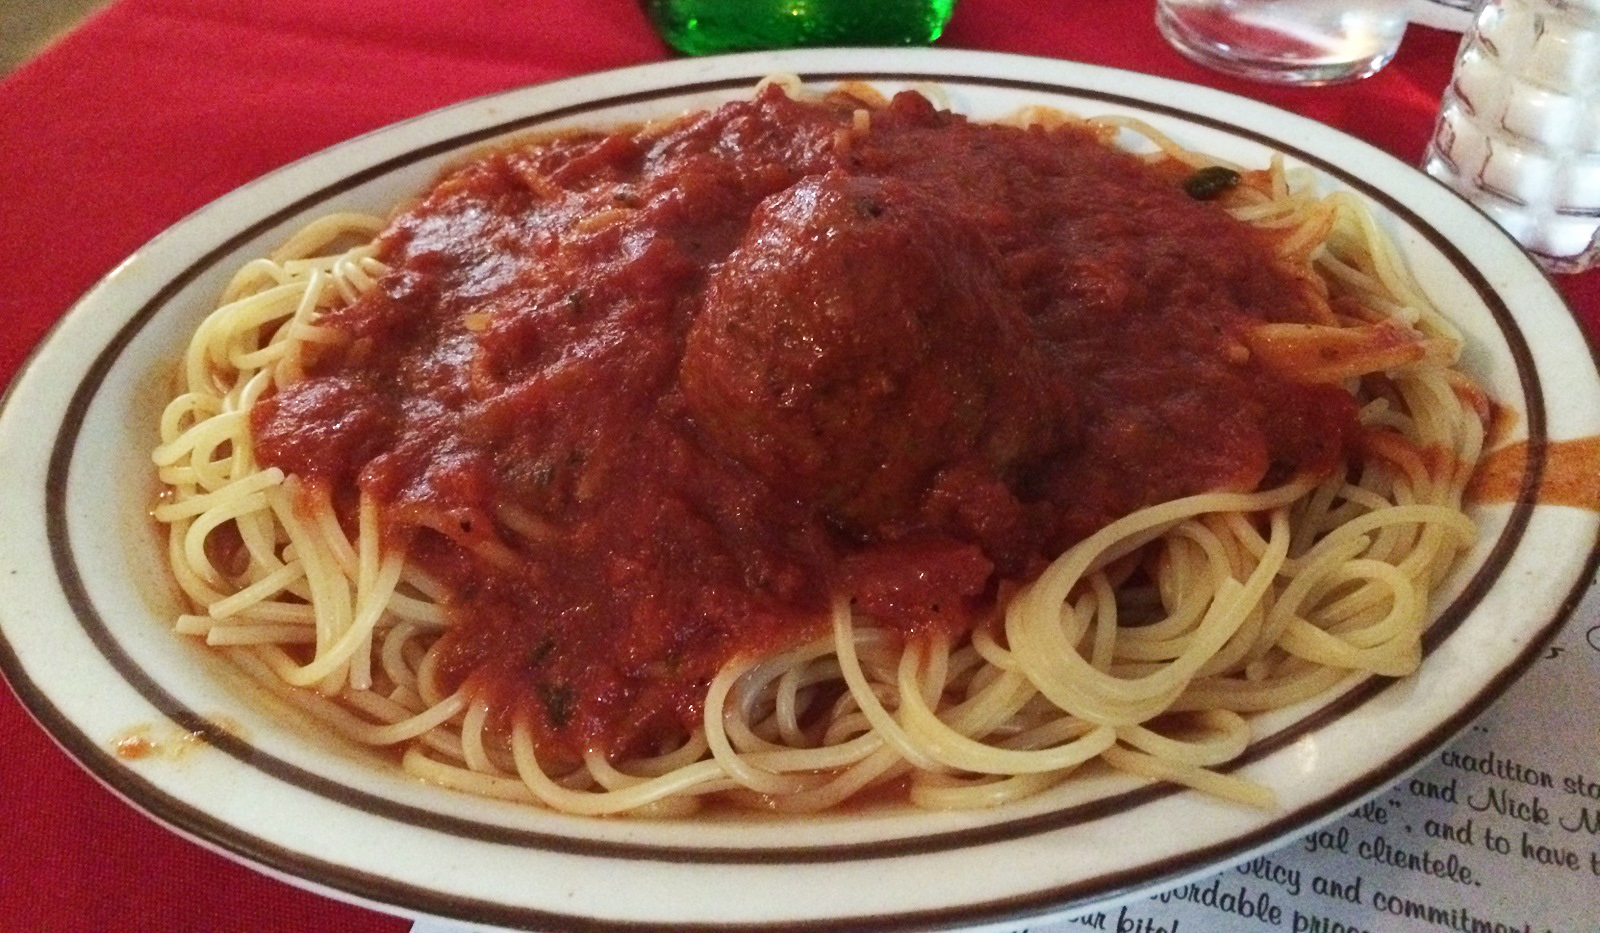 La Hacienda served classic Italian fare, like the spaghetti and meatballs pictured here. (Ryan Nagelhout/Special to The News)